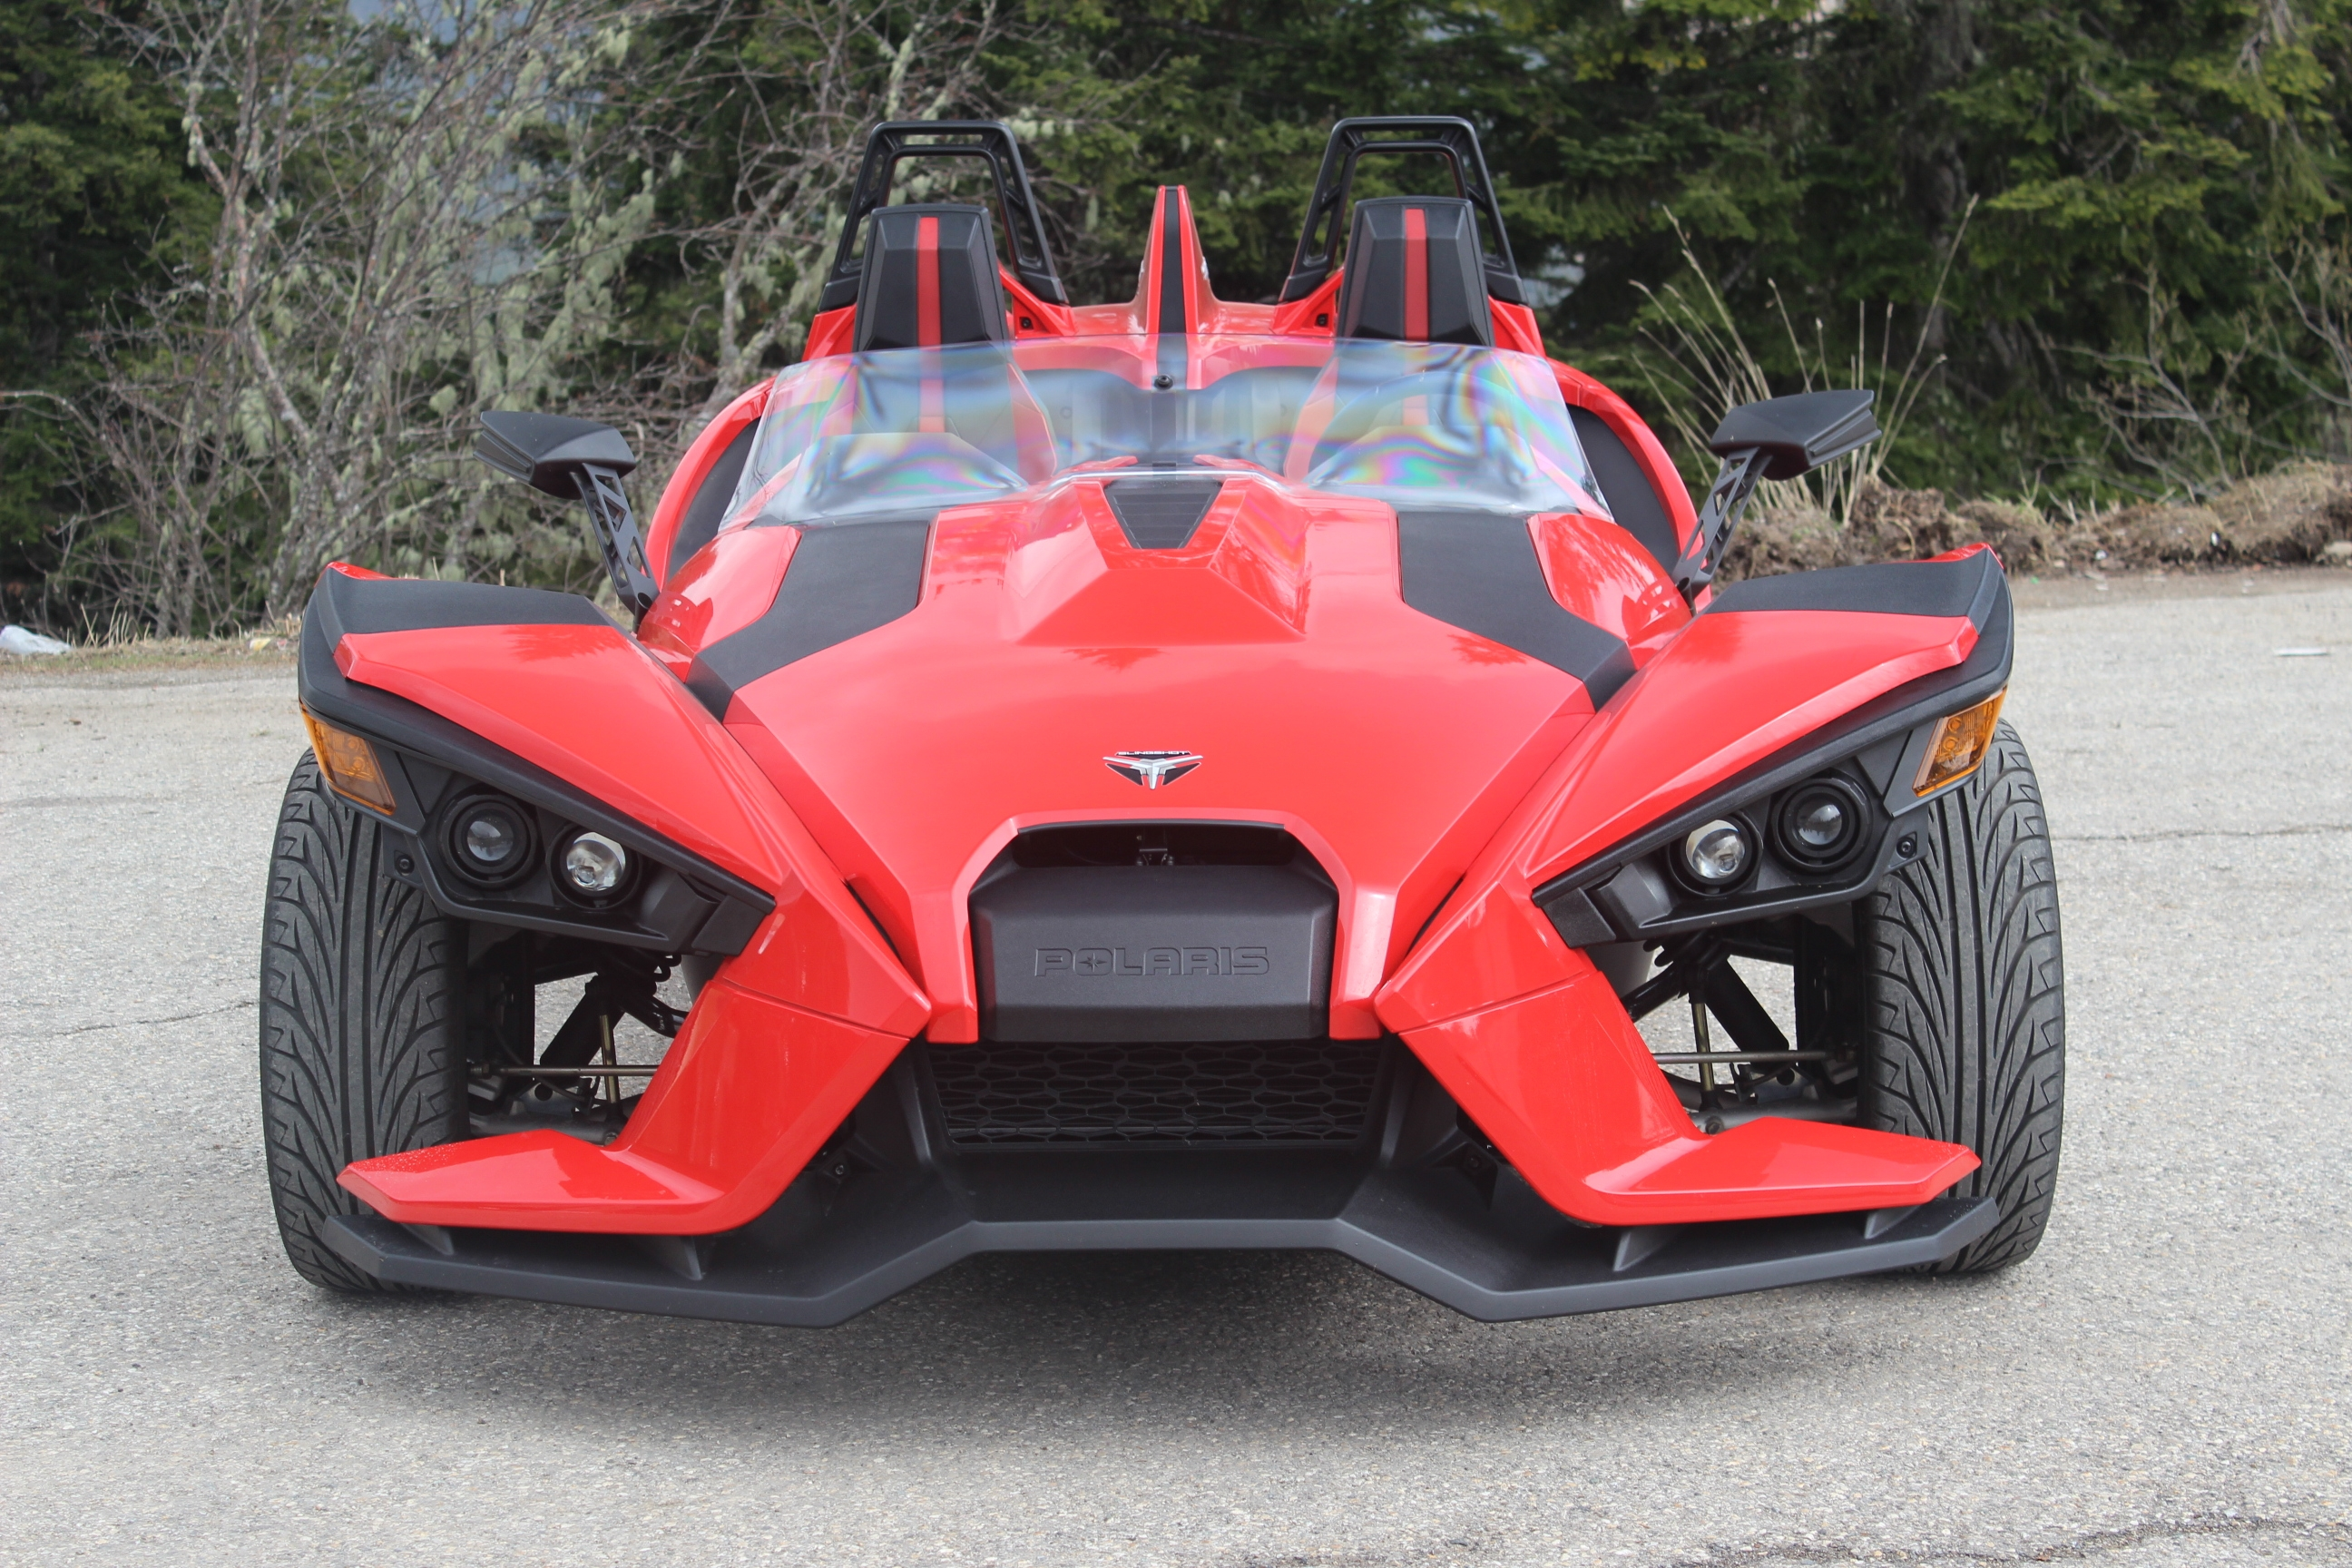 reportage vid o une journ e en polaris slingshot. Black Bedroom Furniture Sets. Home Design Ideas